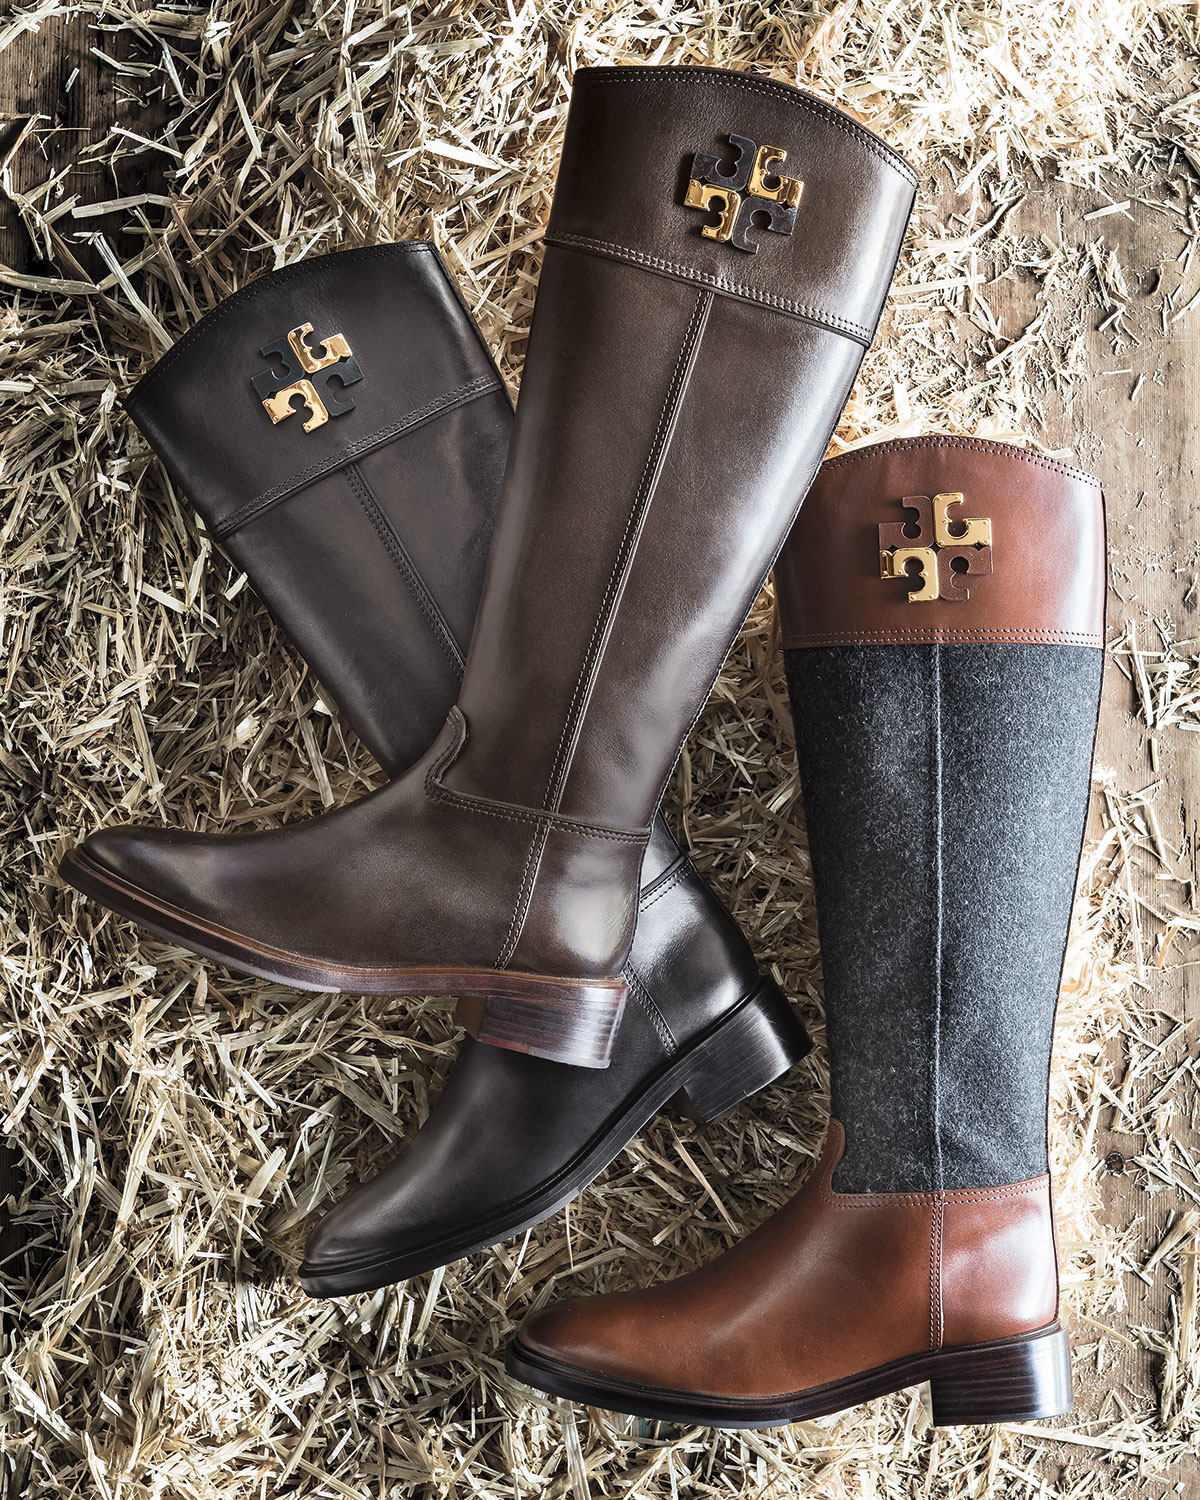 1f20d3bc1e3d Lyst - Tory Burch Lowell Logo Riding Boots in Brown